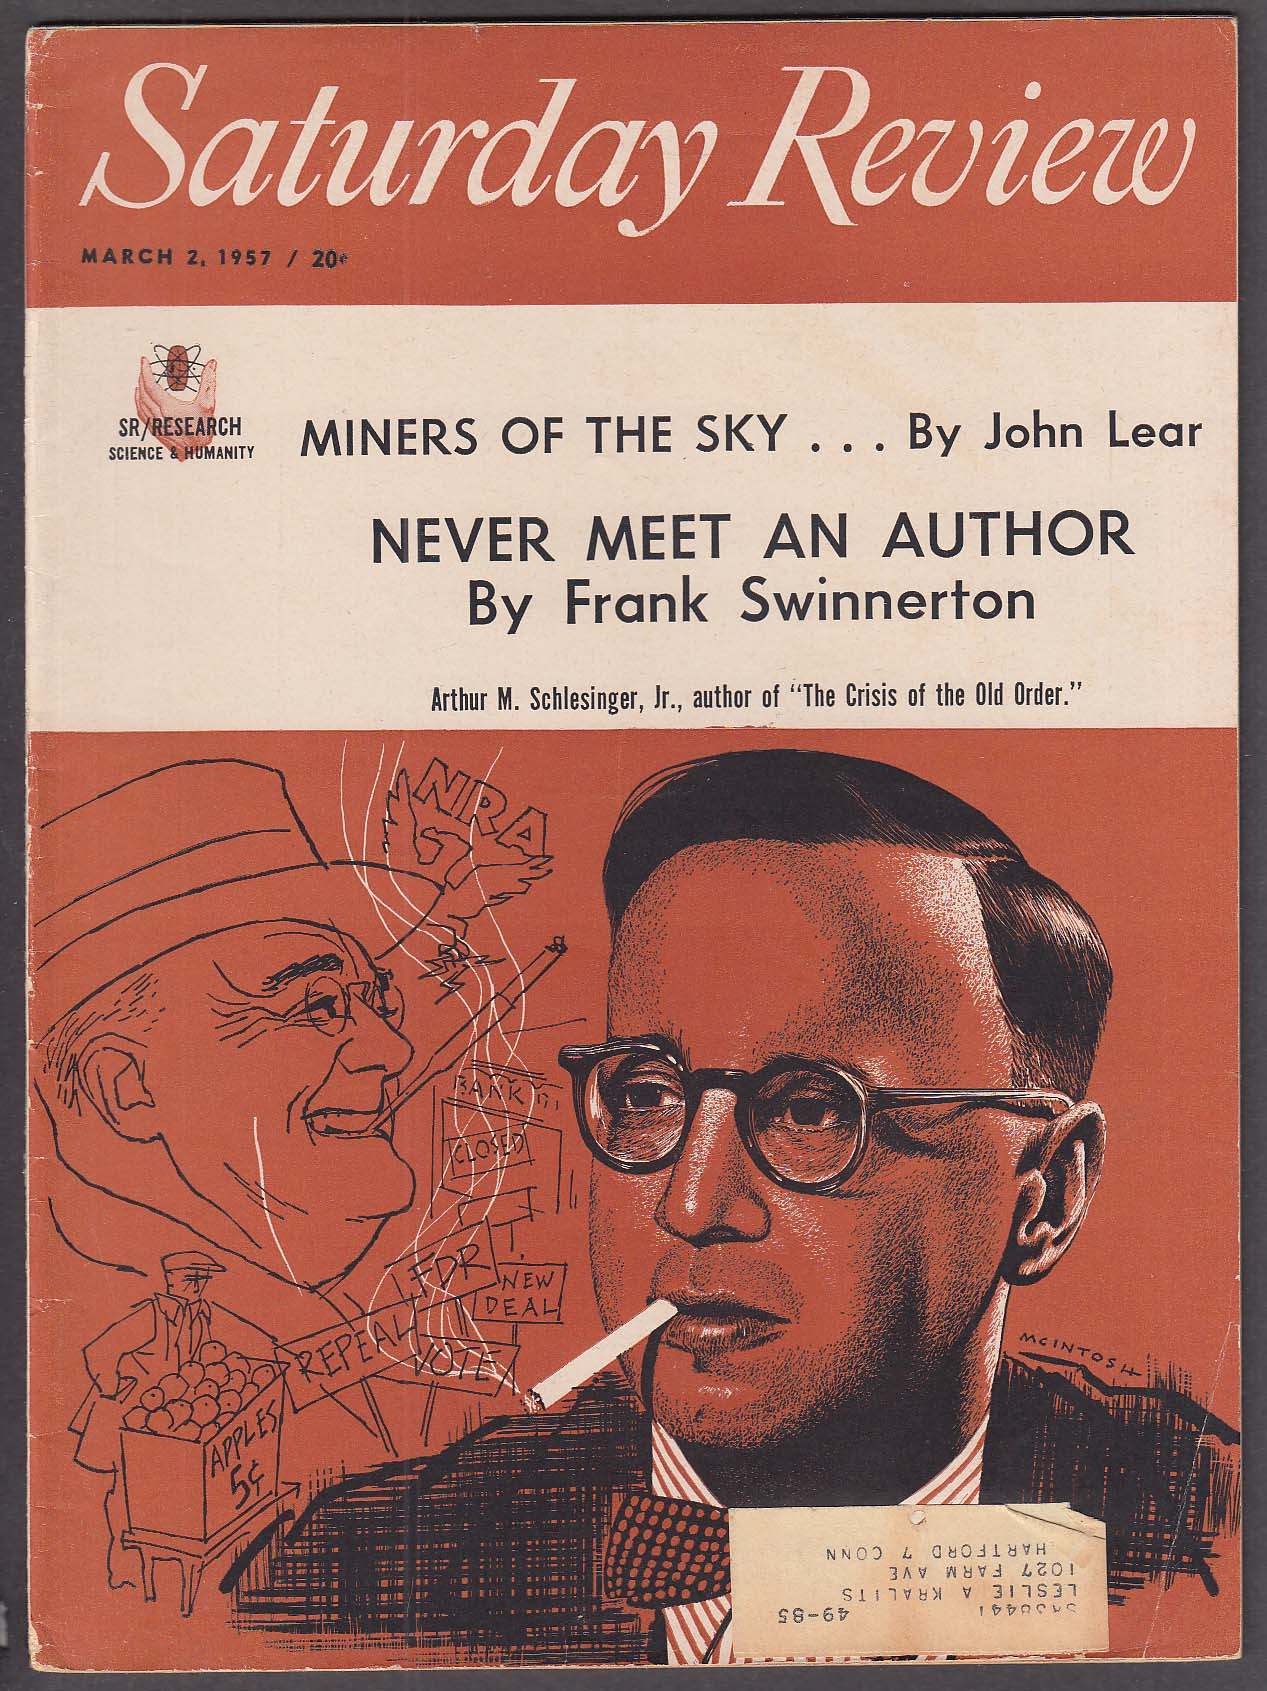 Image for SATURDAY REVIEW Arthur Schlesinger Crisis of the Old Order John Lear ++ 3/2 1957